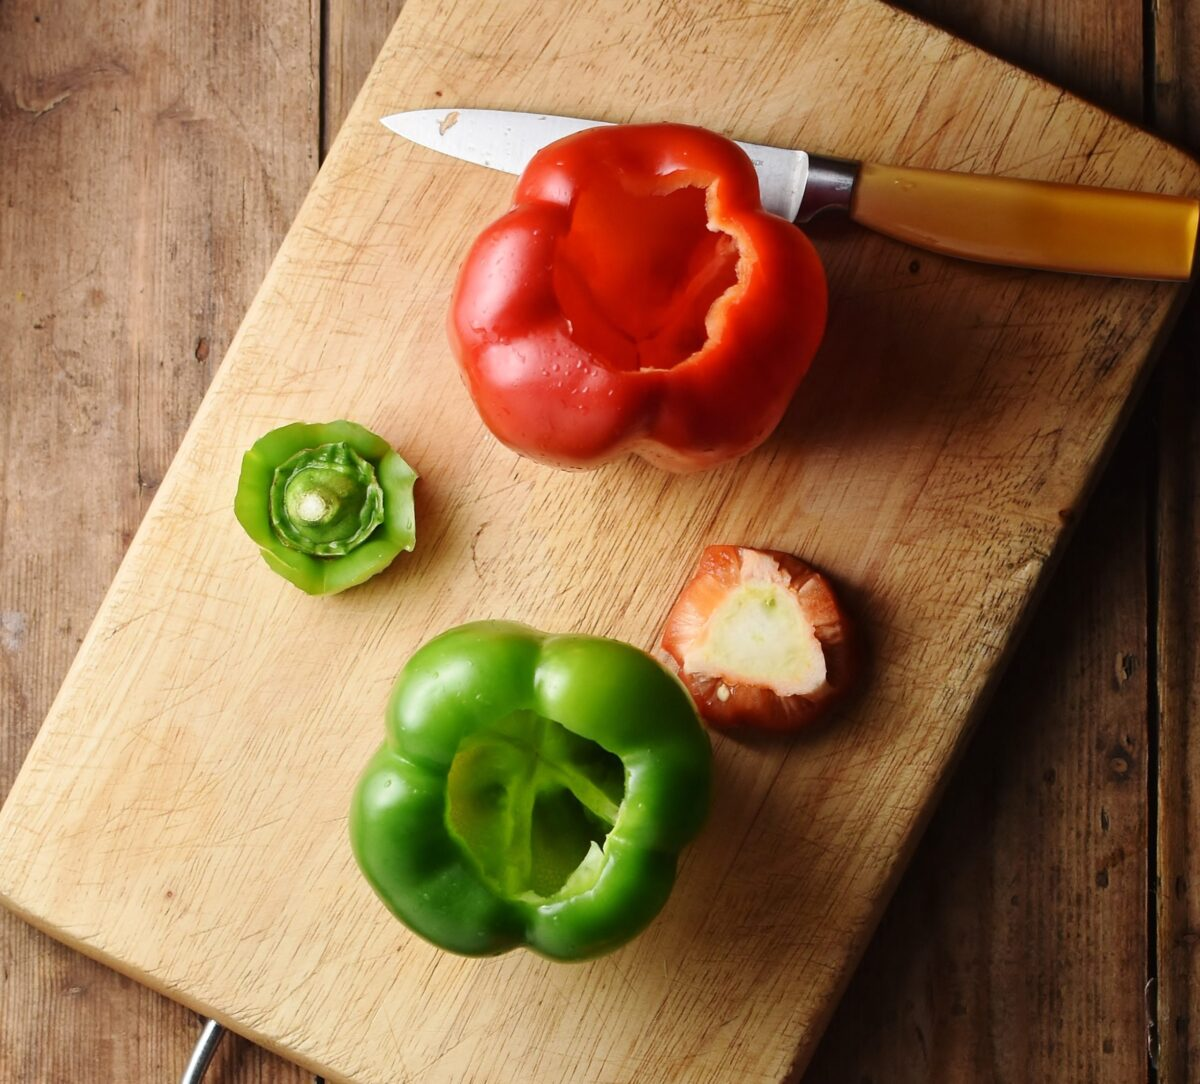 Red and green bell peppers tops removed on chopping board with small yellow knife.